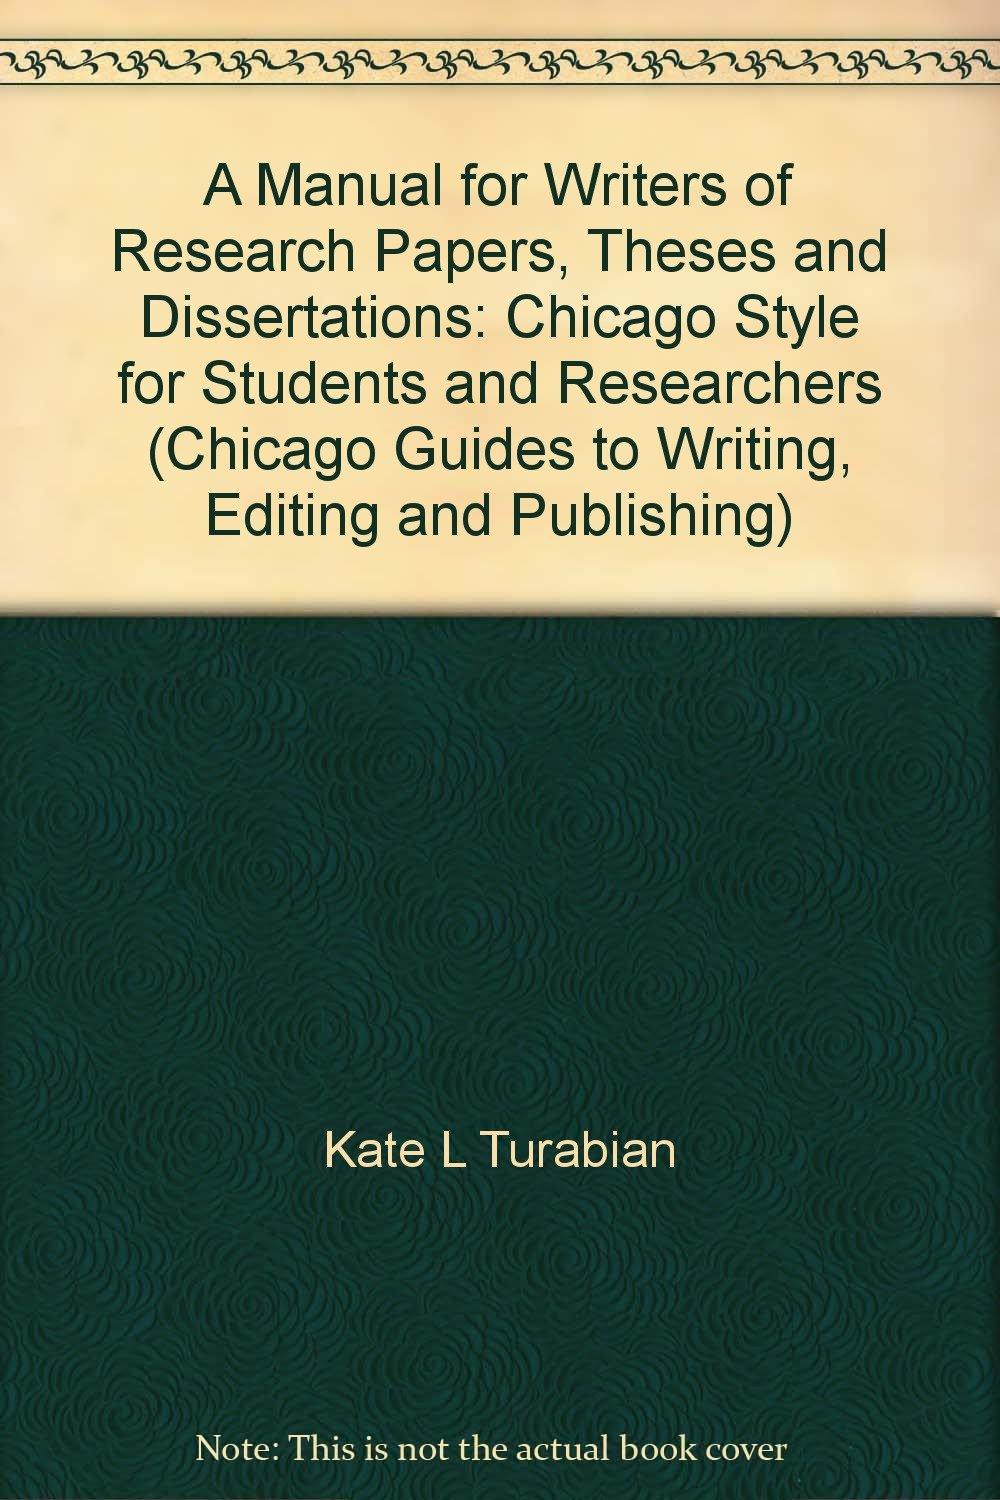 009 Manual For Writers Of Researchs Theses And Dissertations By Kate L Turabian 712bwm9gx2dl Sensational A Research Papers L. Full